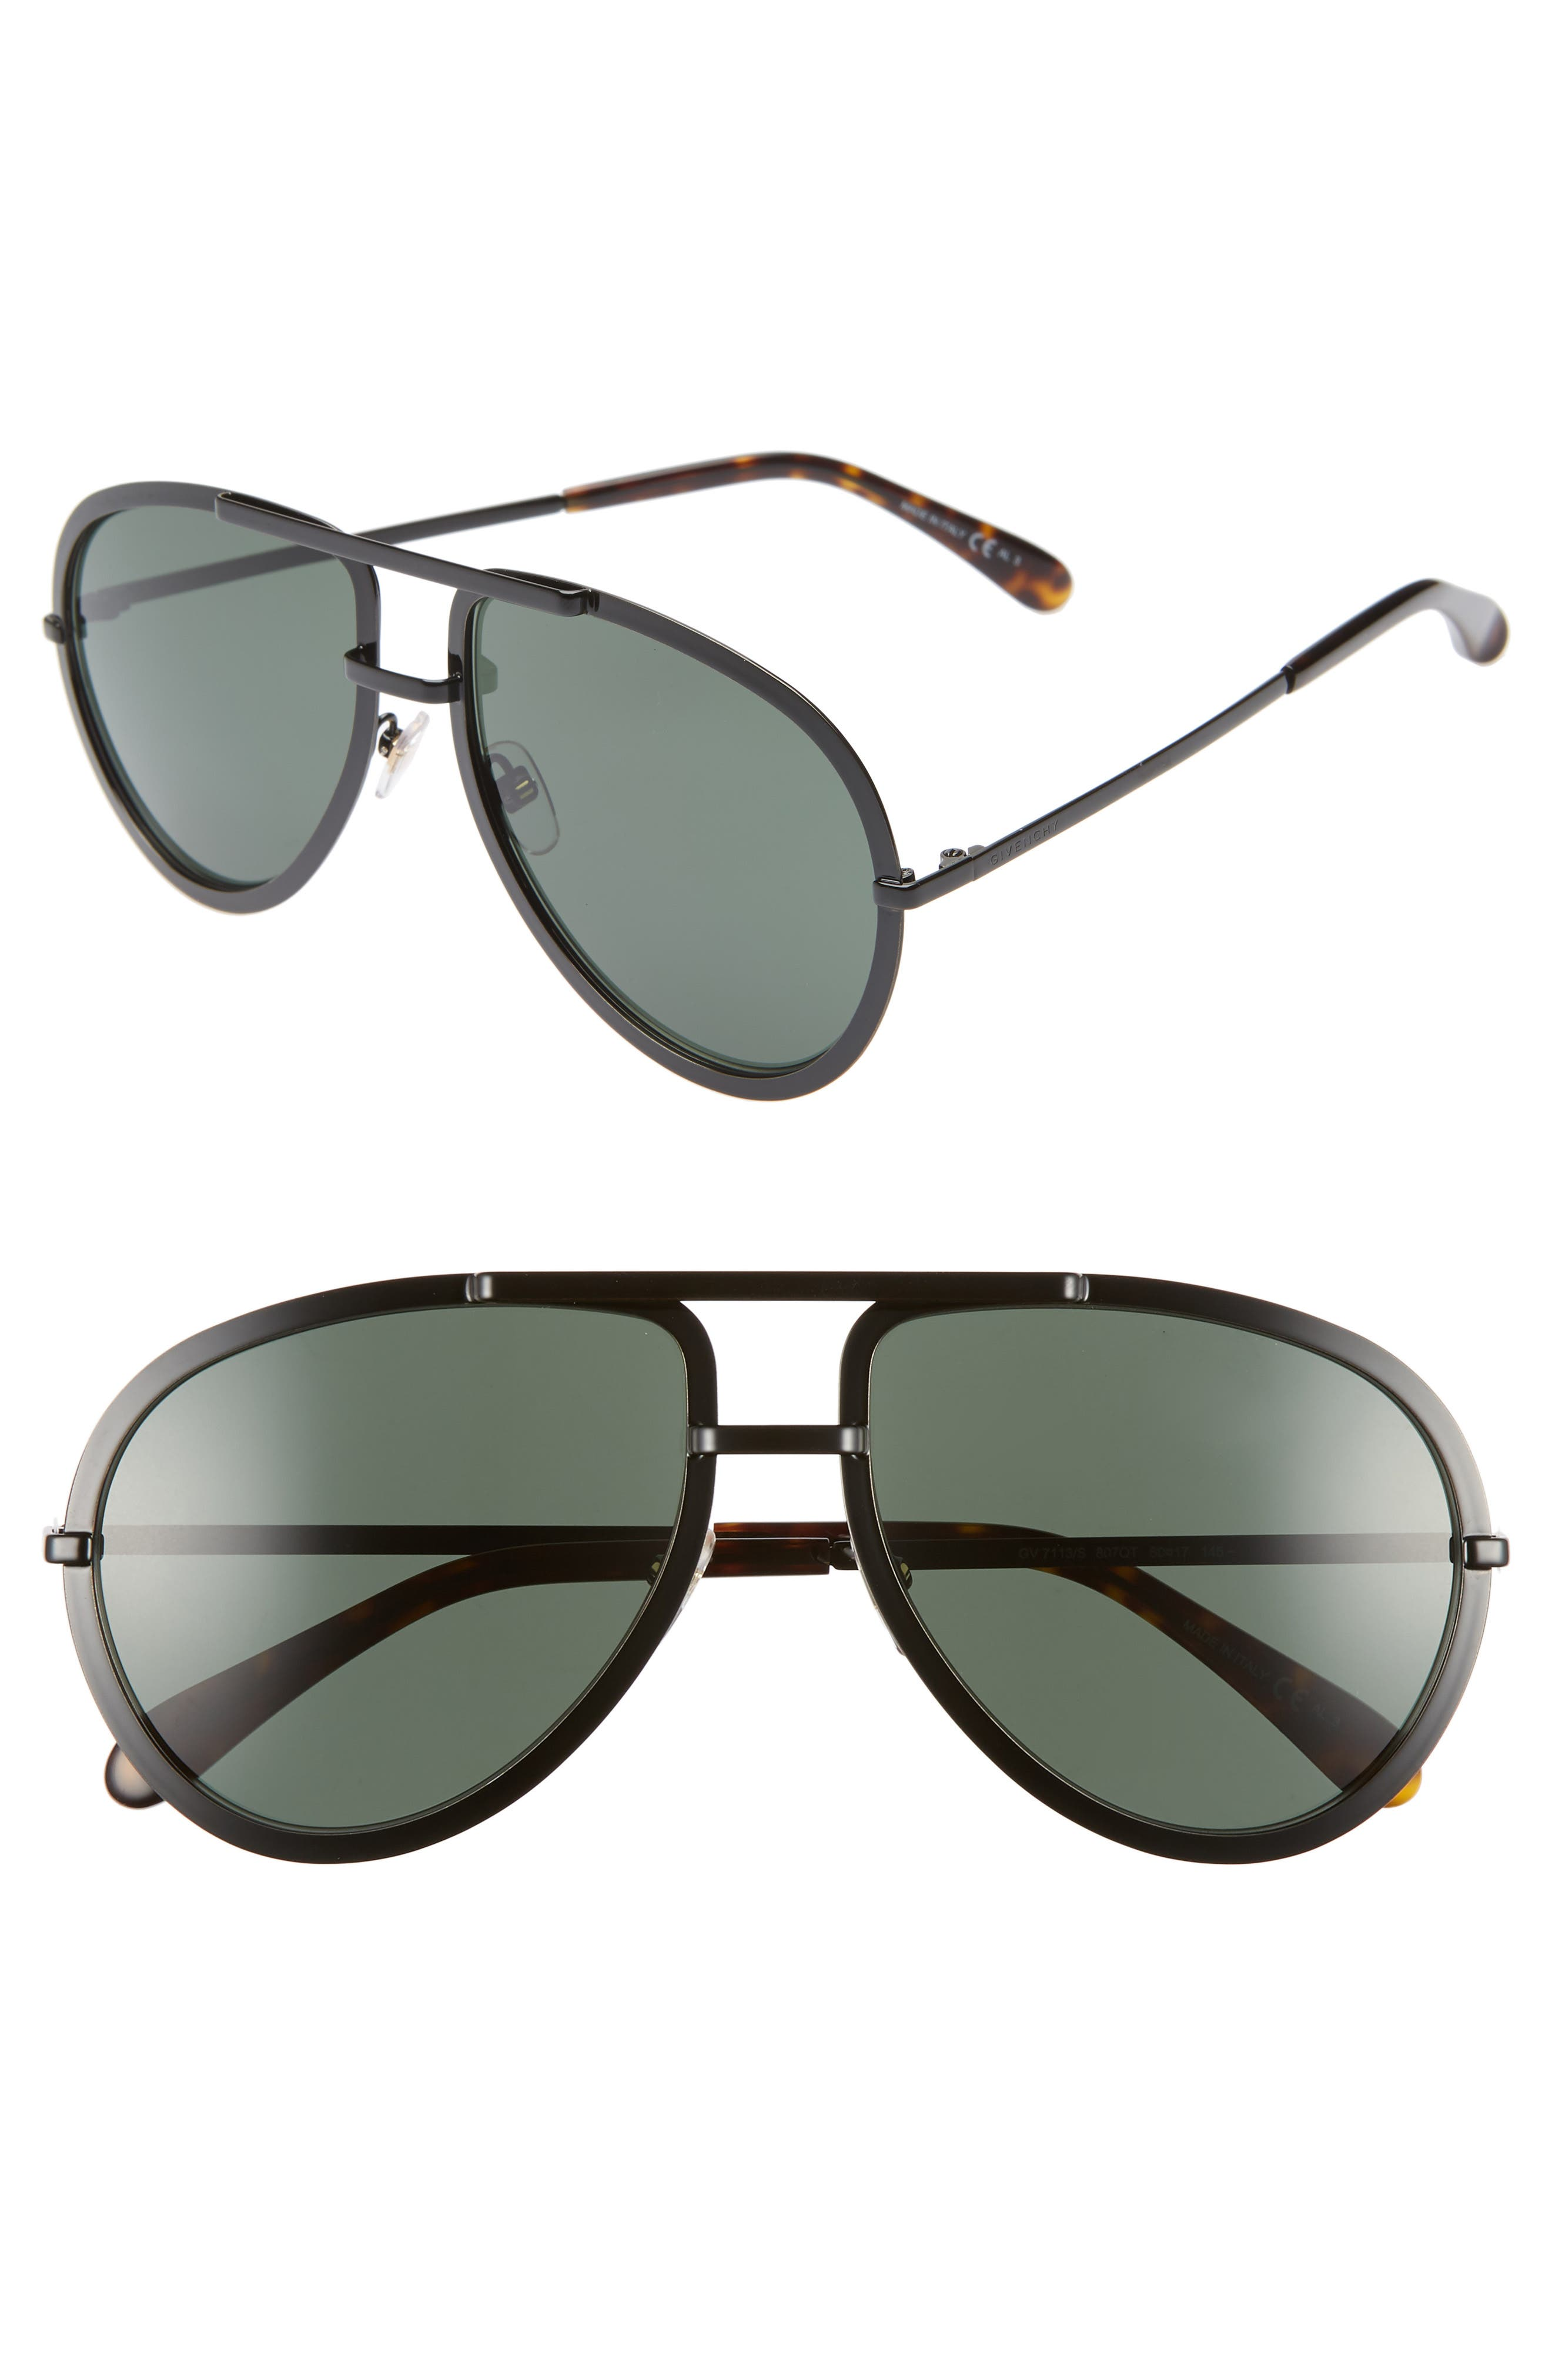 Givenchy 60Mm Aviator Sunglasses - Black